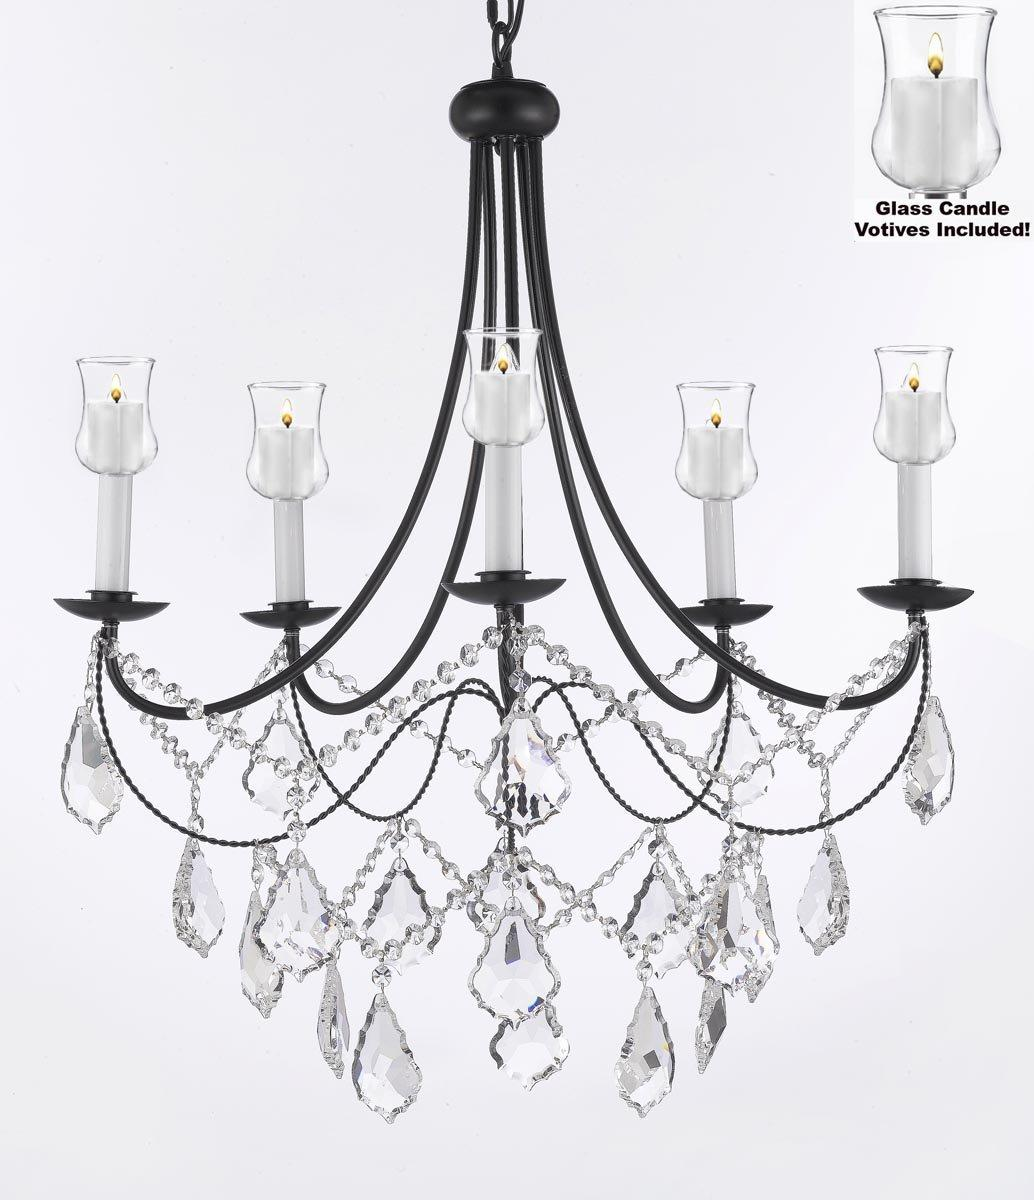 Crystal Chandelier Lighting With Candle Votives H22.5 W26 For Indoors/Outdoors